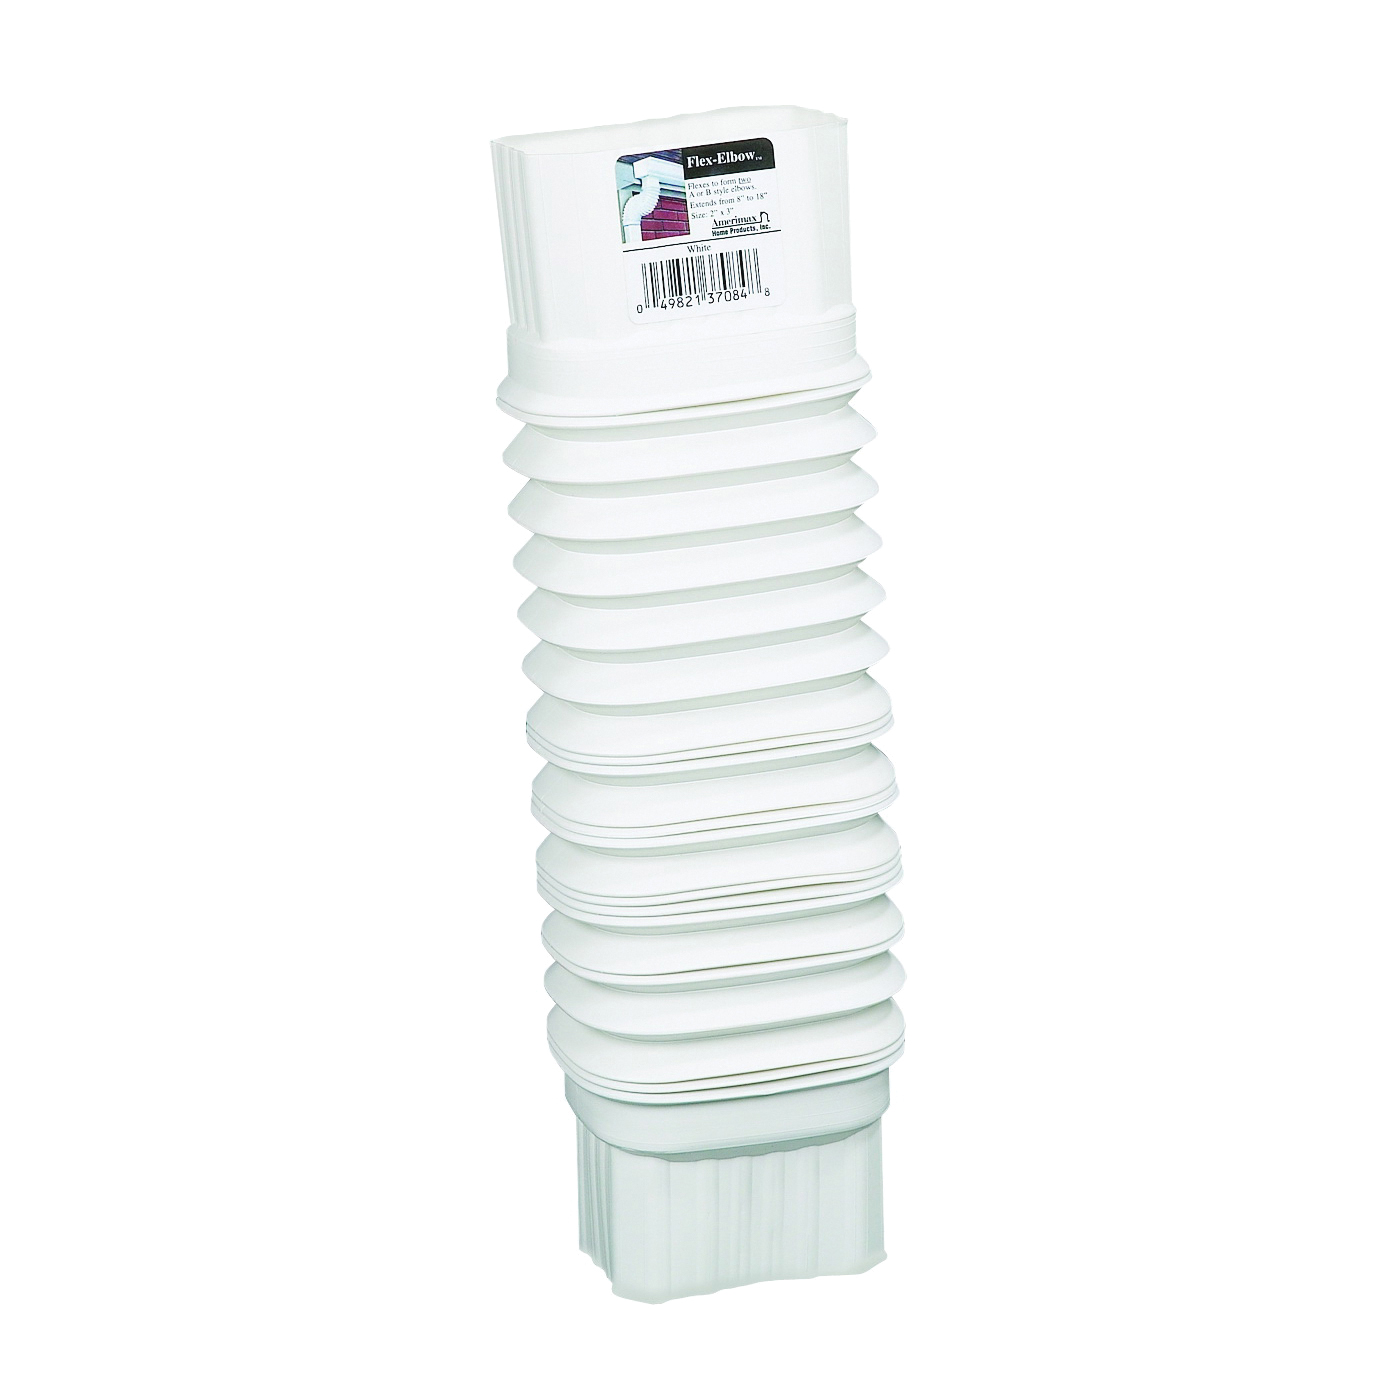 Picture of Amerimax Flex-Elbow 37084 Gutter Elbow, 4, 5 in Gutter, Aluminum, White